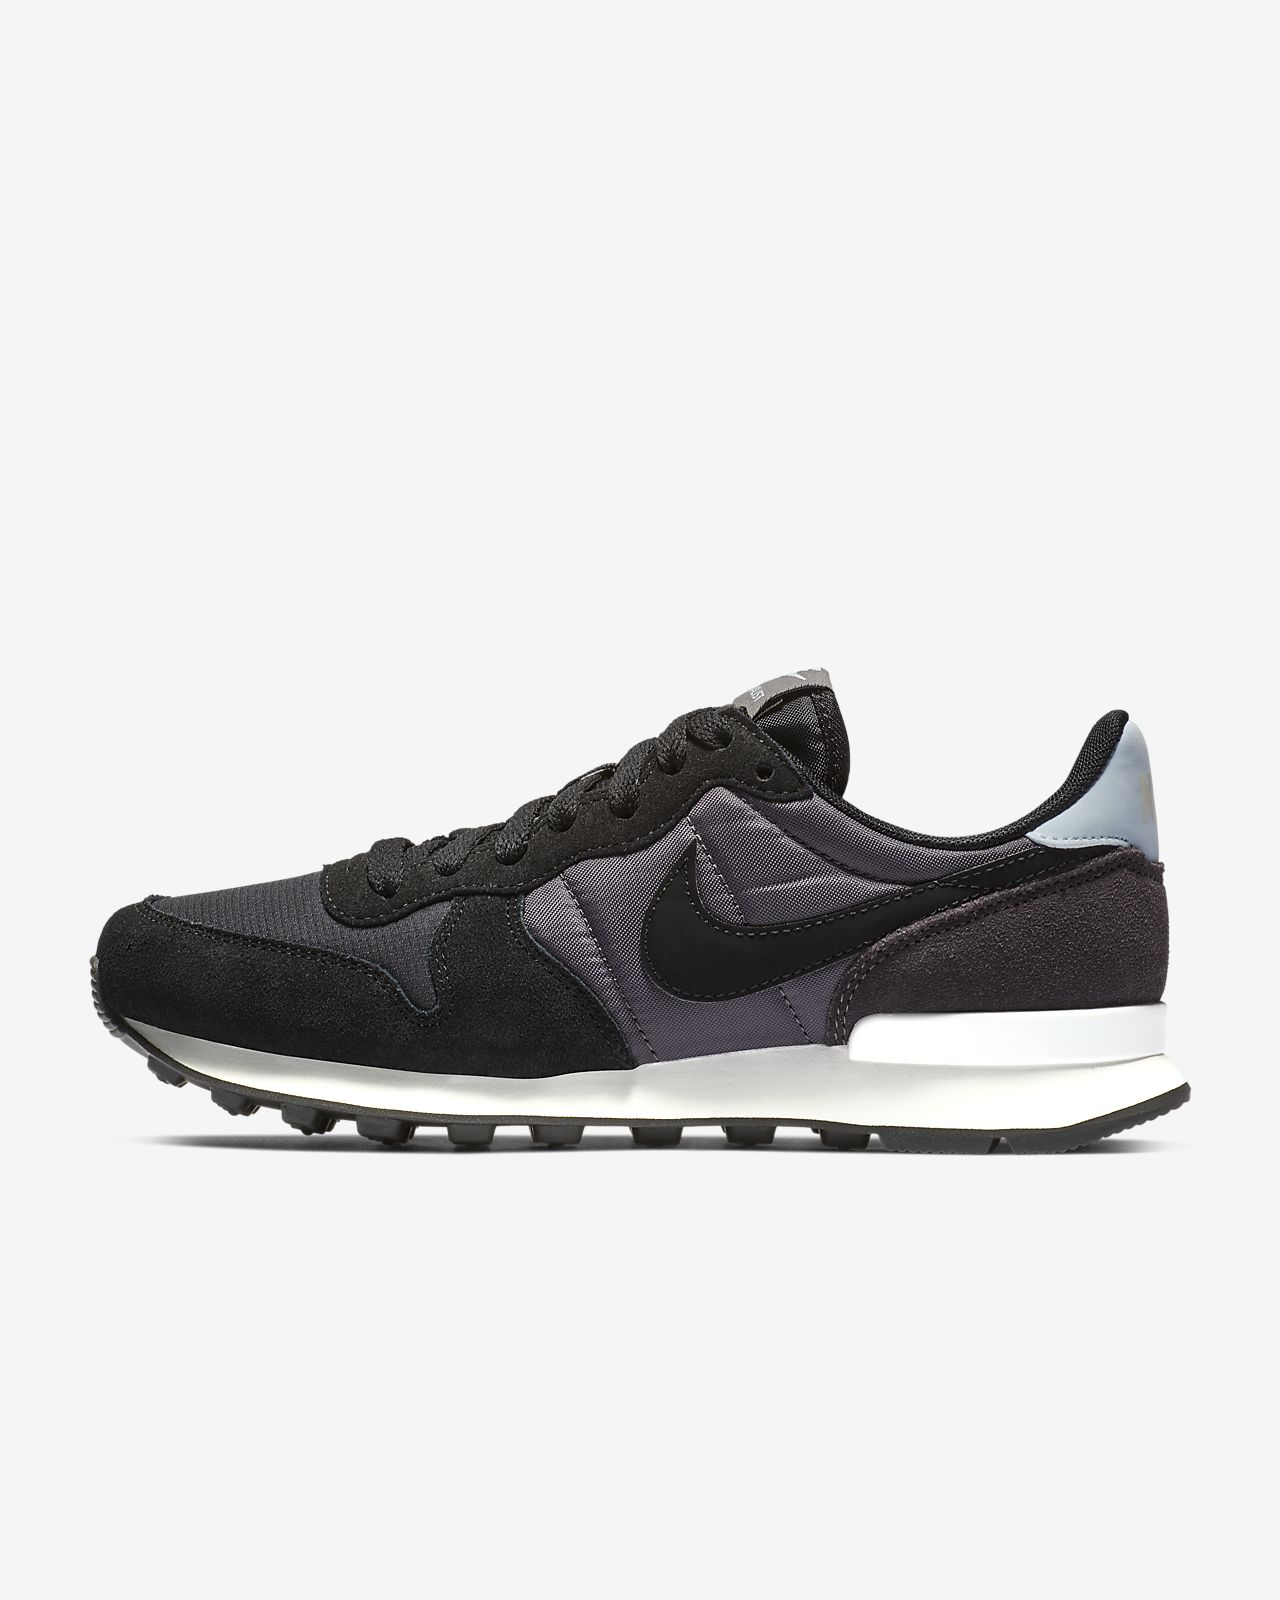 sale retailer b5a36 8e26c Low Resolution Nike Internationalist Zapatillas - Mujer Nike  Internationalist Zapatillas - Mujer